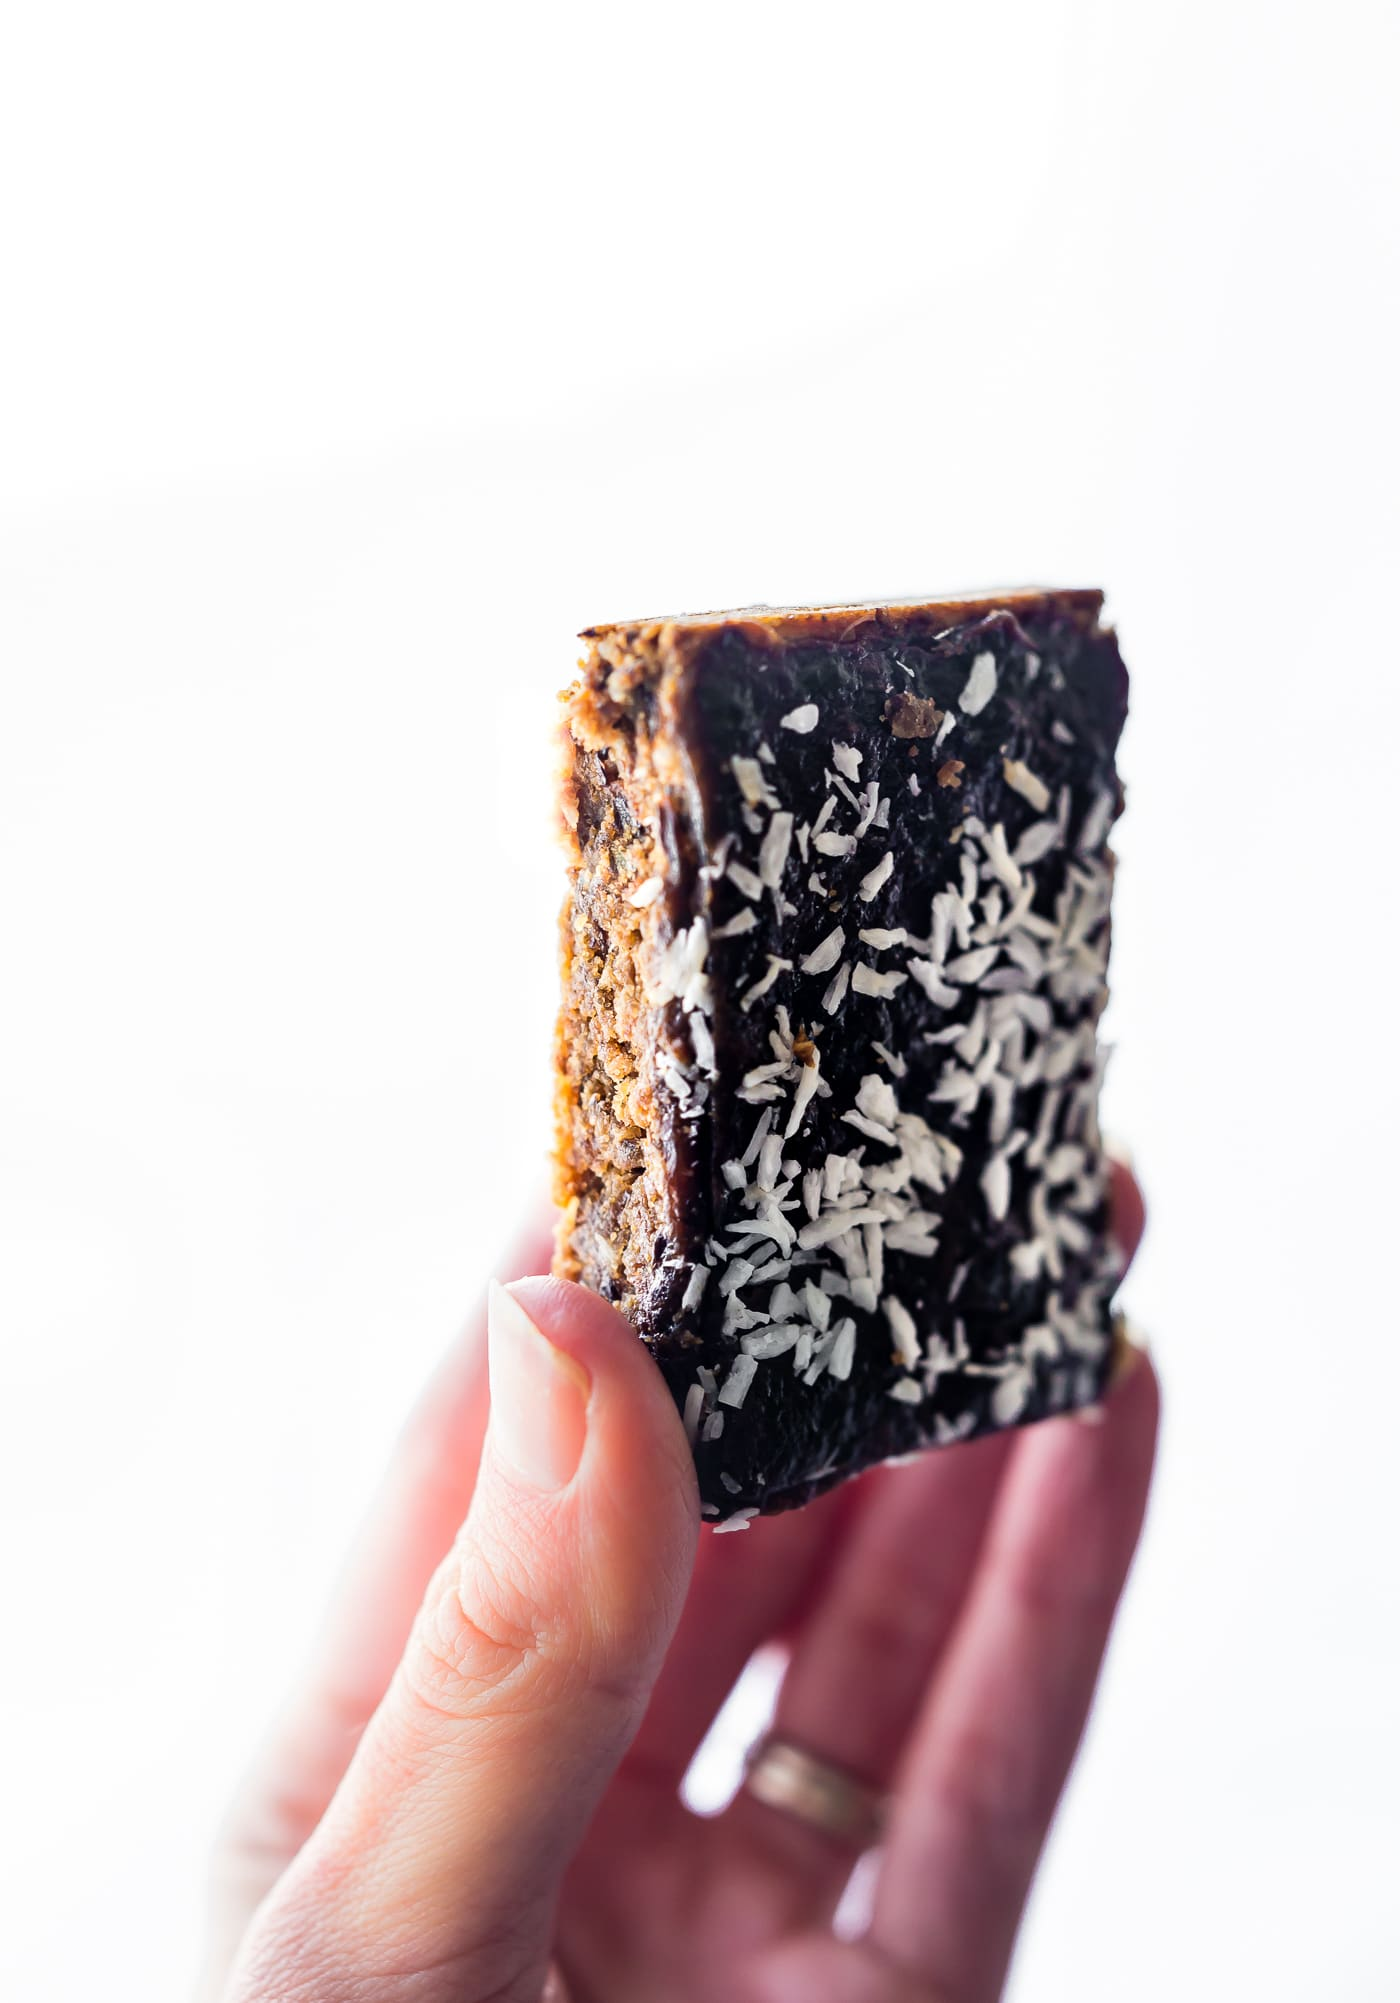 These Paleo Almond Butter Jelly Energy Bars are one of our favorite bars that fuel us for workouts and snacking on the go. Made with few ingredients; no oils and no sugar added. Blended and Baked in just 30 minutes, Which makes them pretty amazing! So chewy and flavorful that you'd never know they were healthy. Freezer friendly.